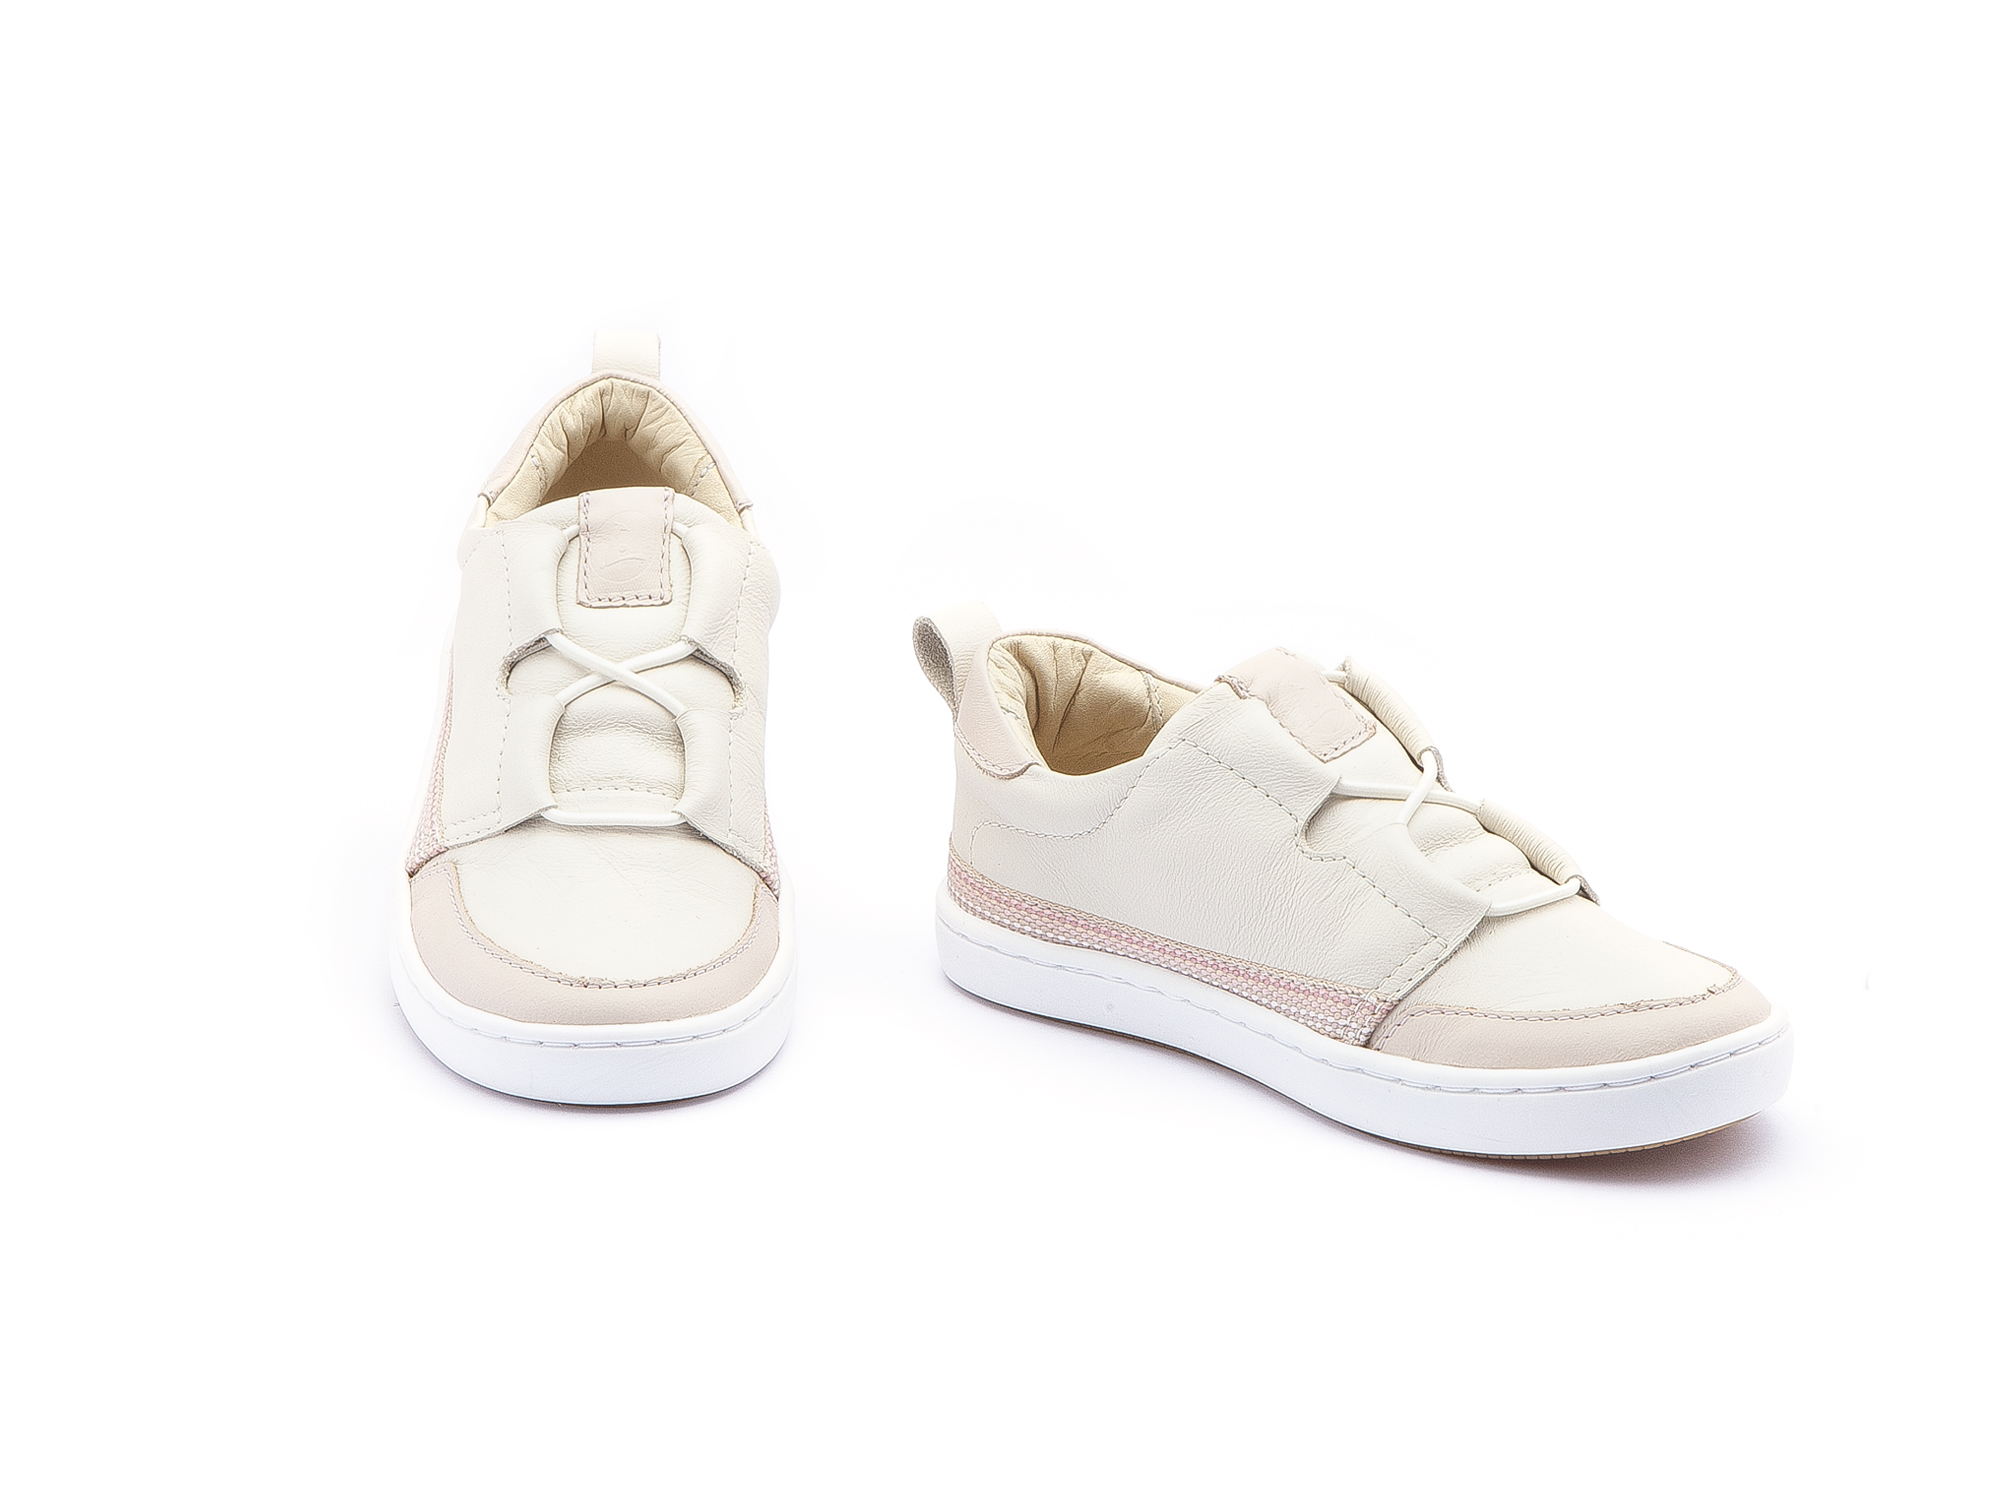 Sneaker Casual Little Ancestral Tapioca/ Cotton Candy Toddler 2 à 4 anos - 1